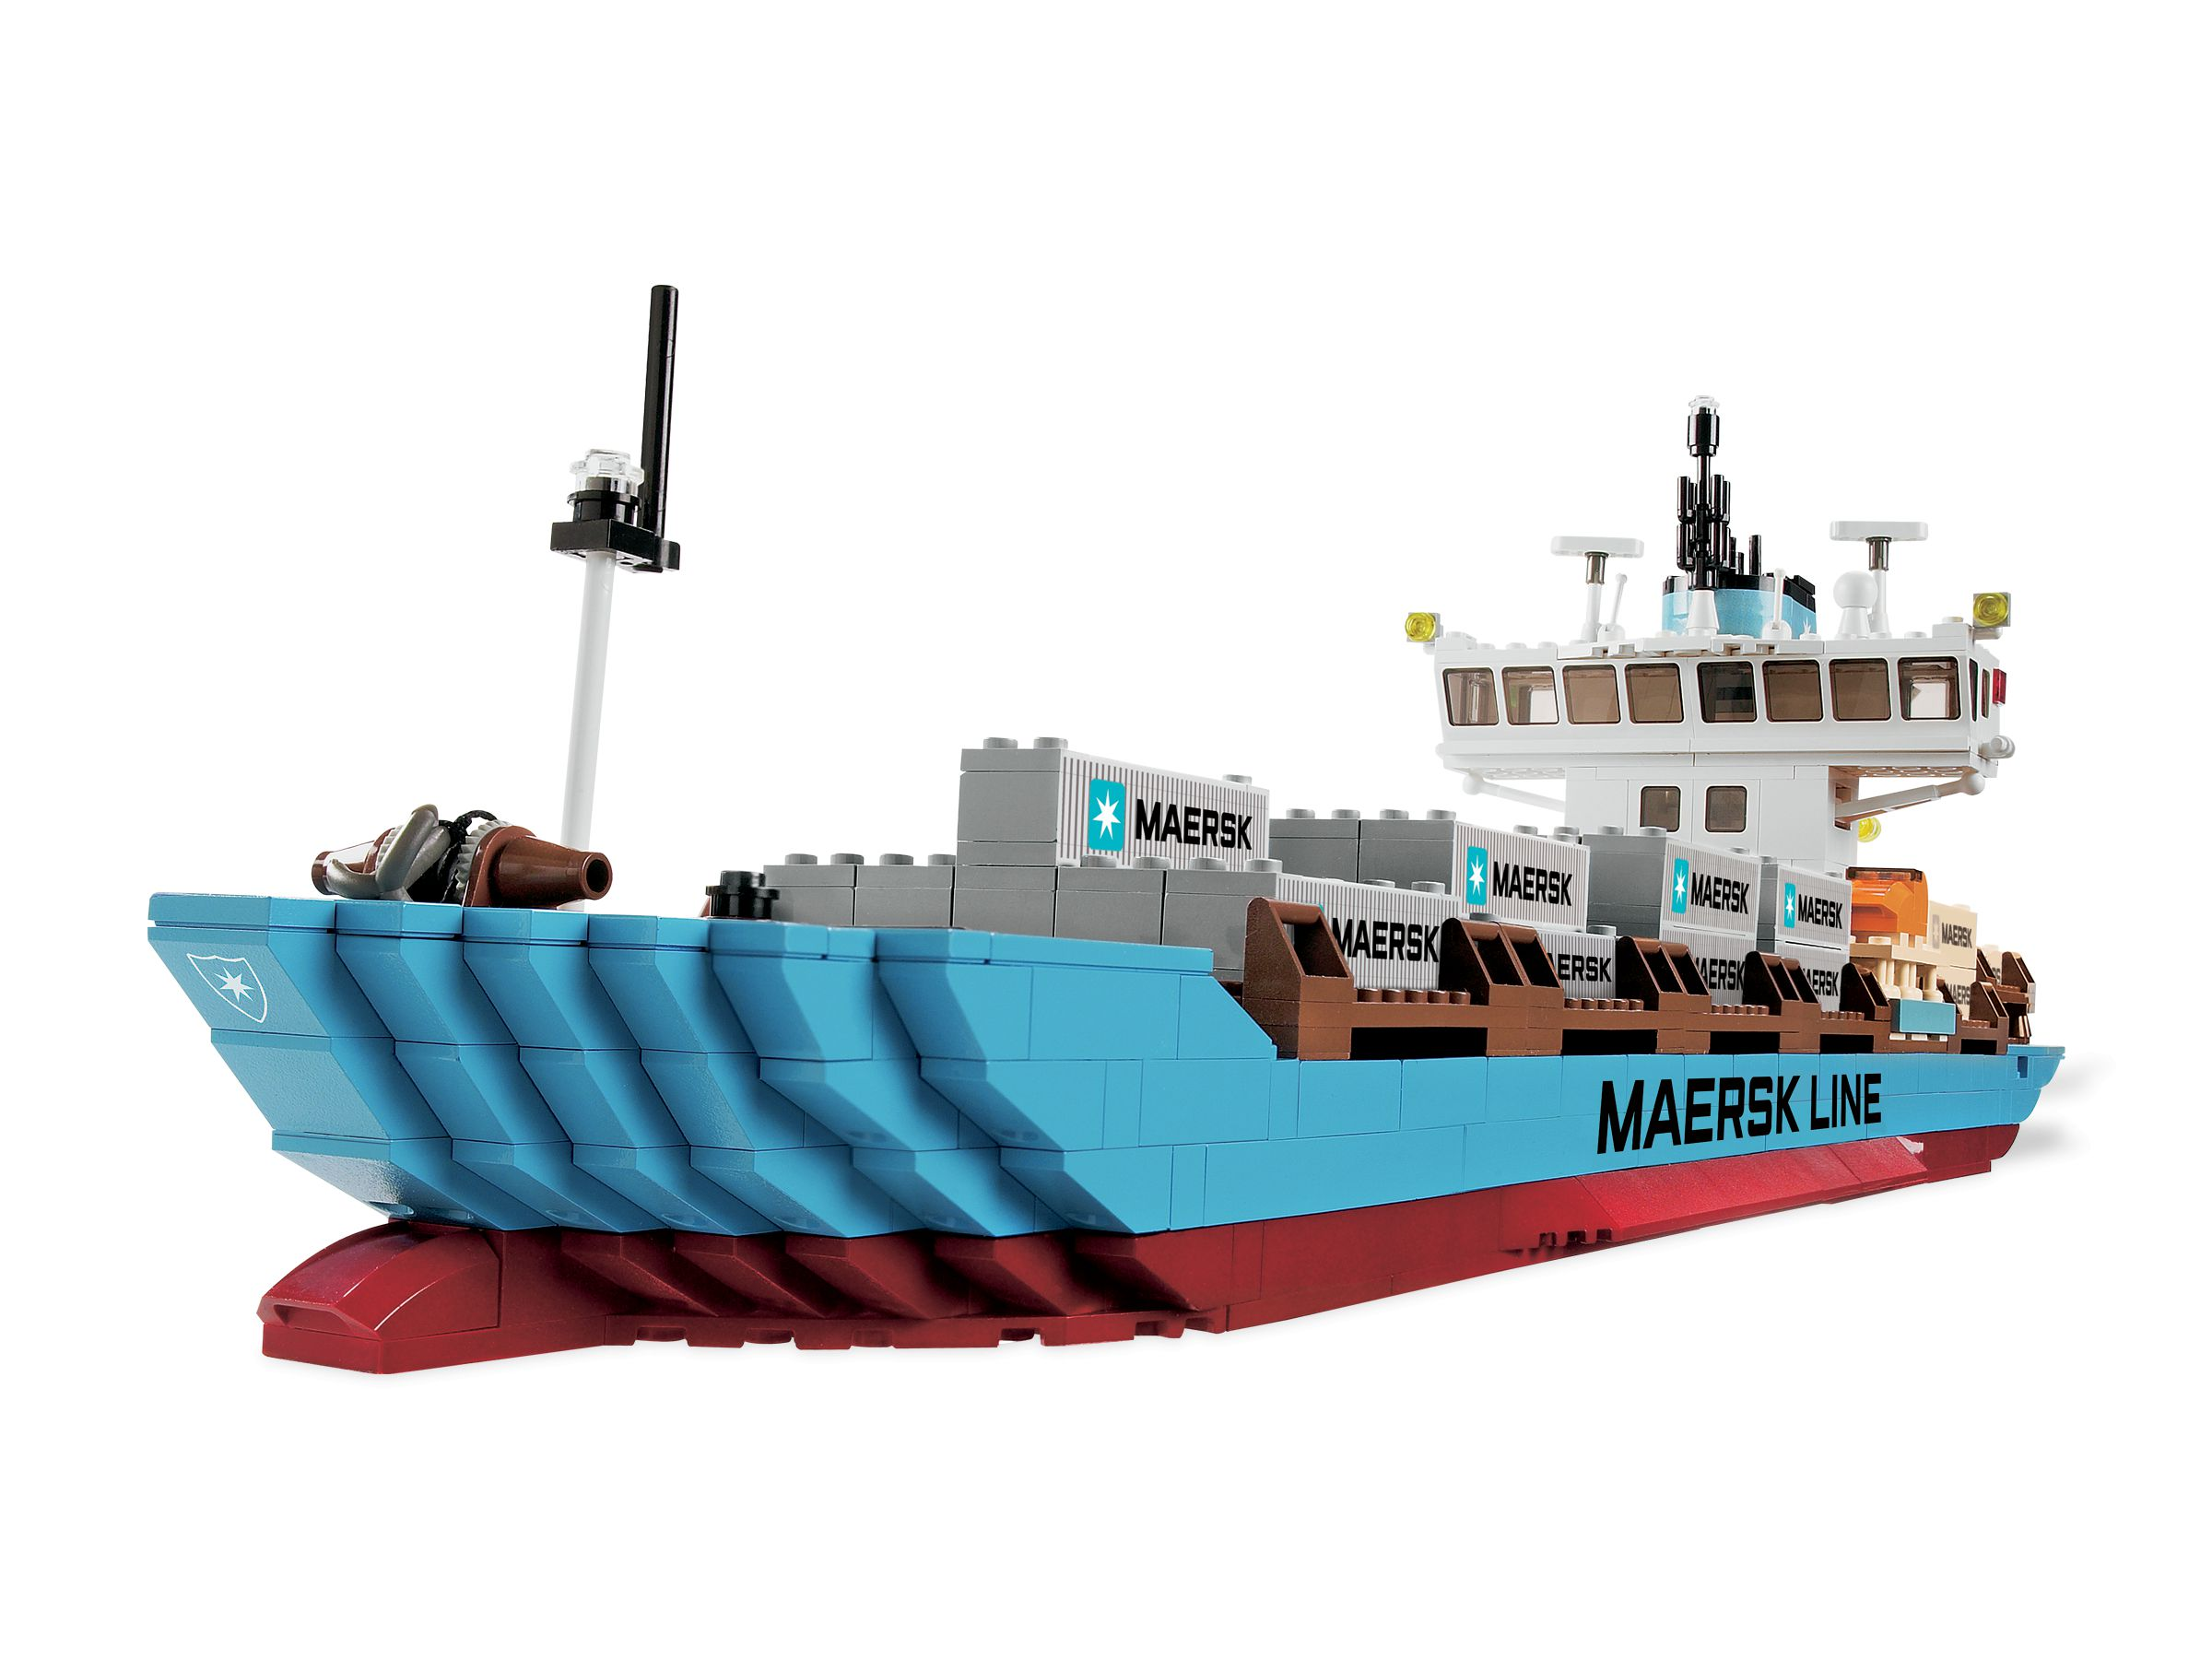 LEGO Advanced Models 10155 Maersk Line Container Ship LEGO_10155.jpg